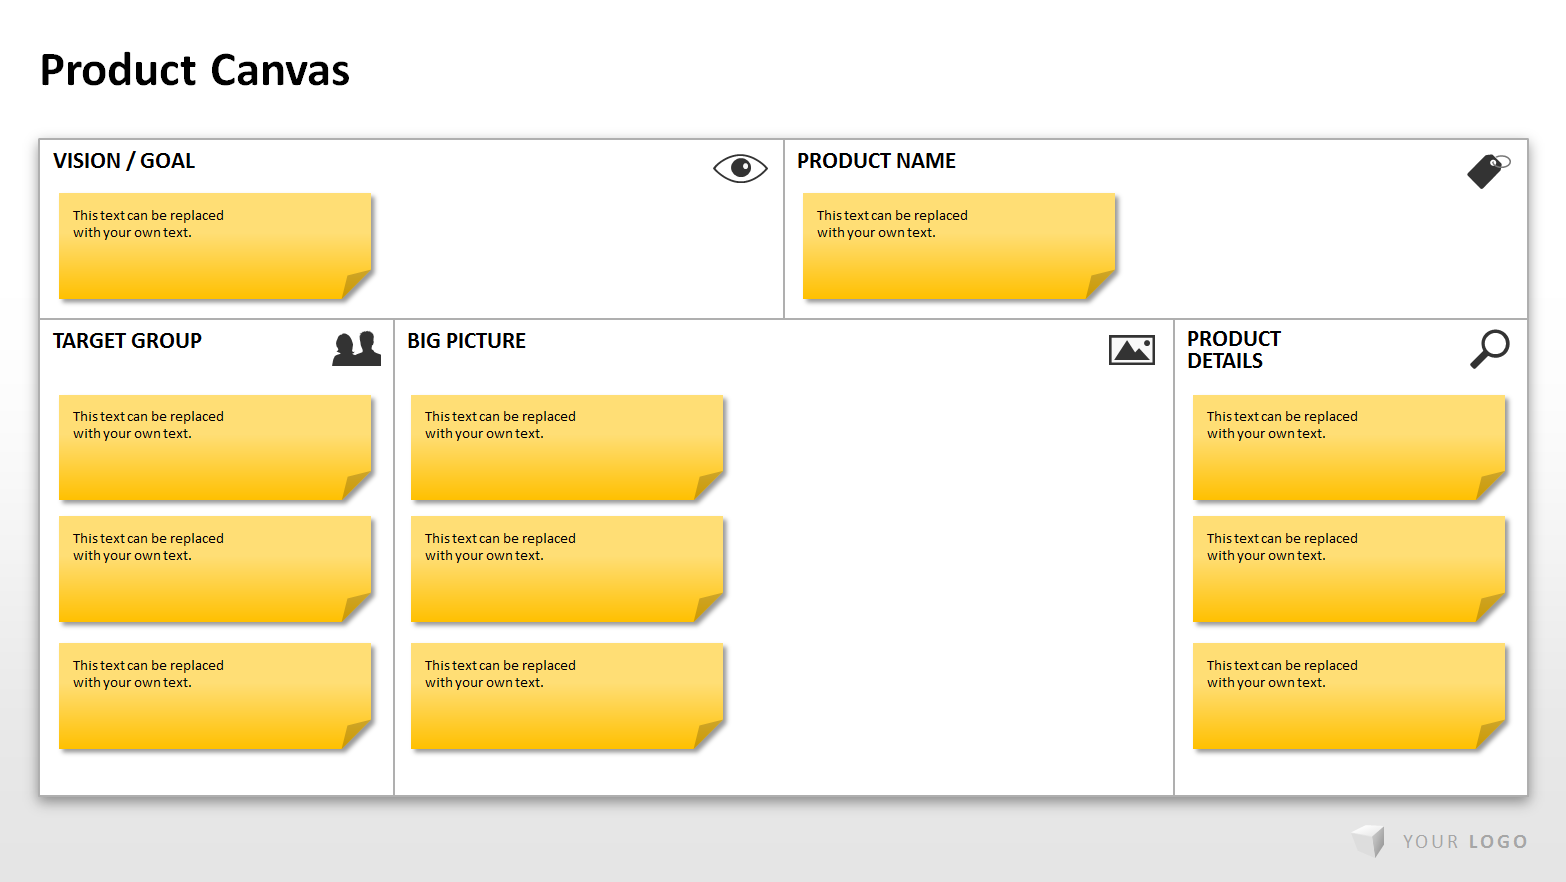 Product Canvas Product Development Made Easy